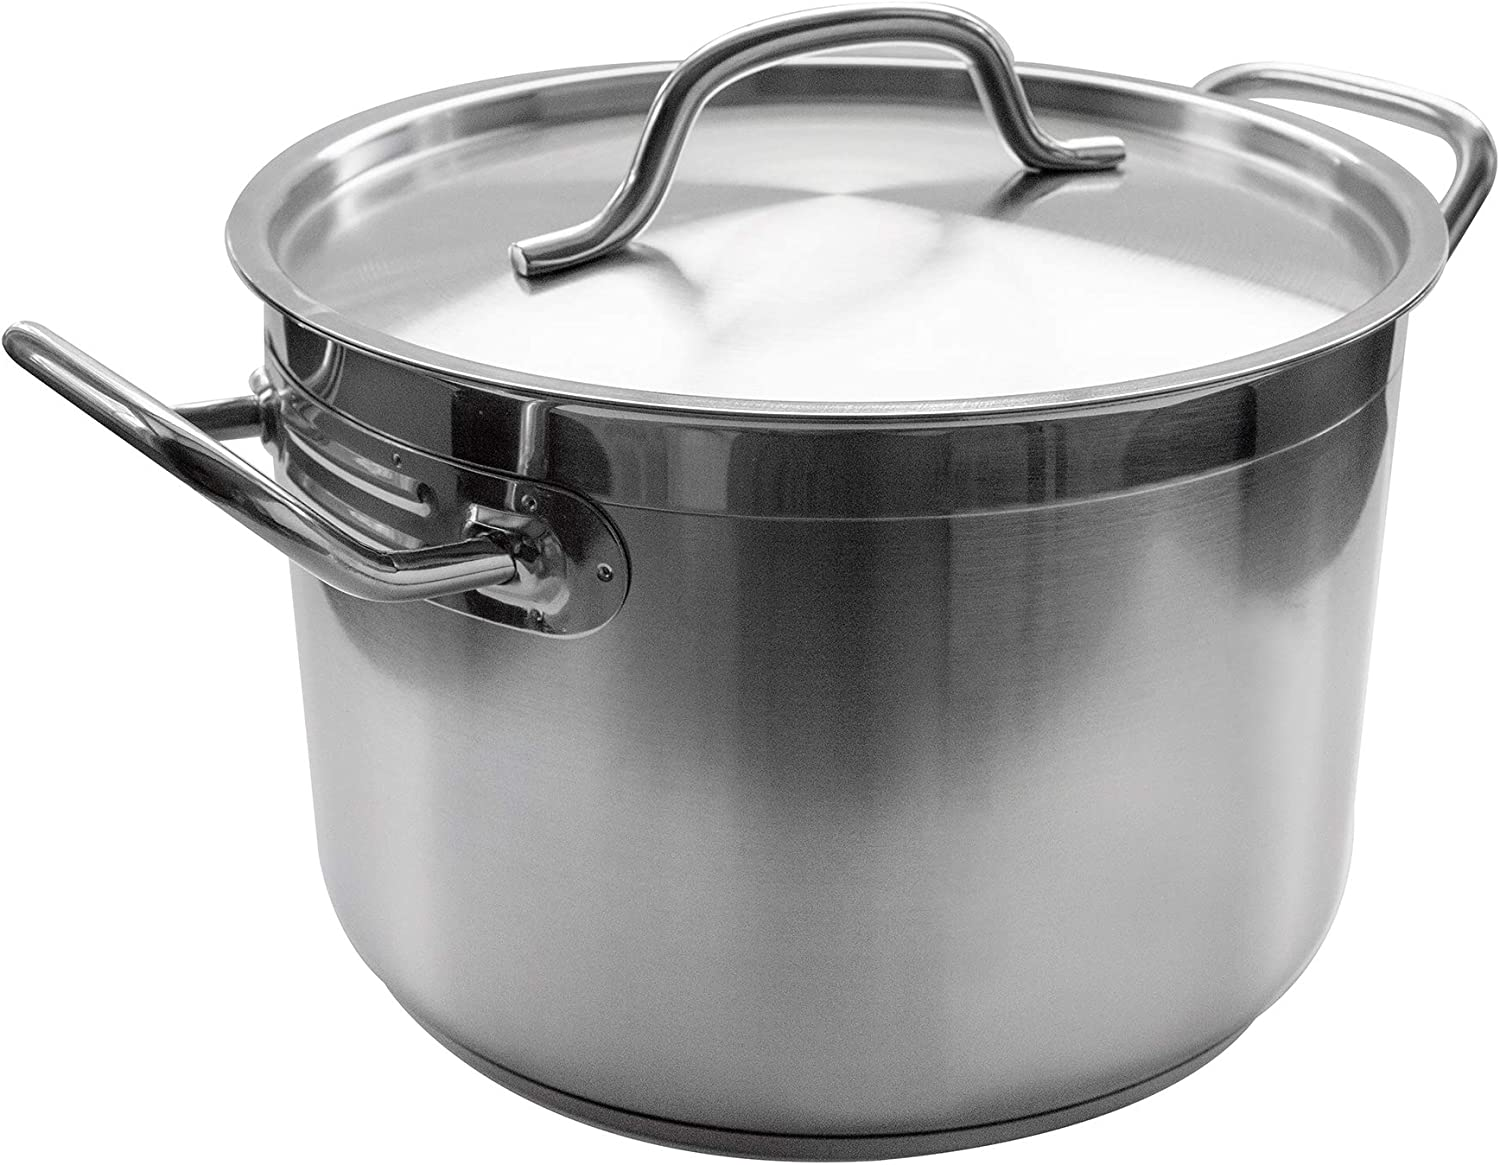 Update International 80 Qt Induction Ready Stainless Steel Stock Pot w/Cover